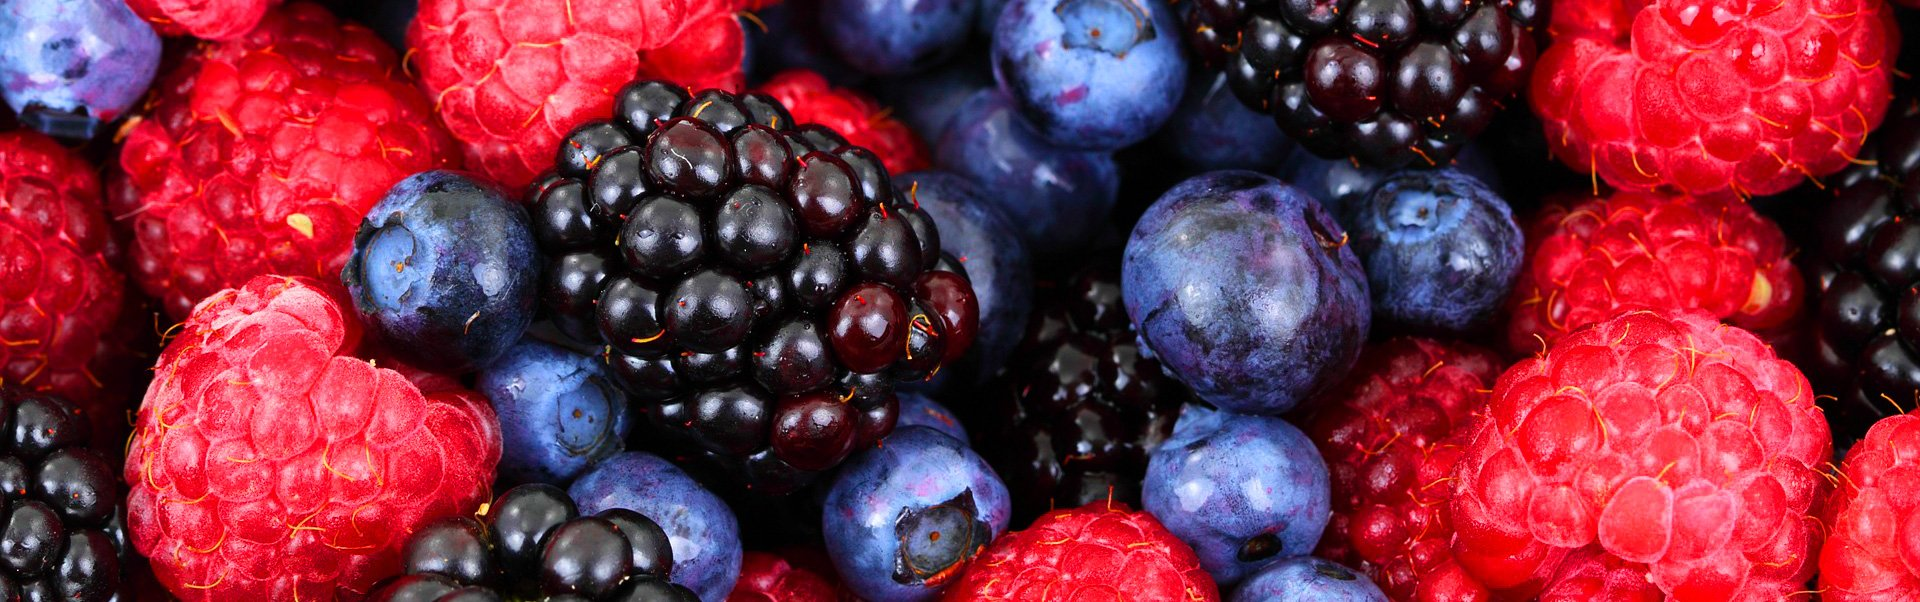 berry fruit products